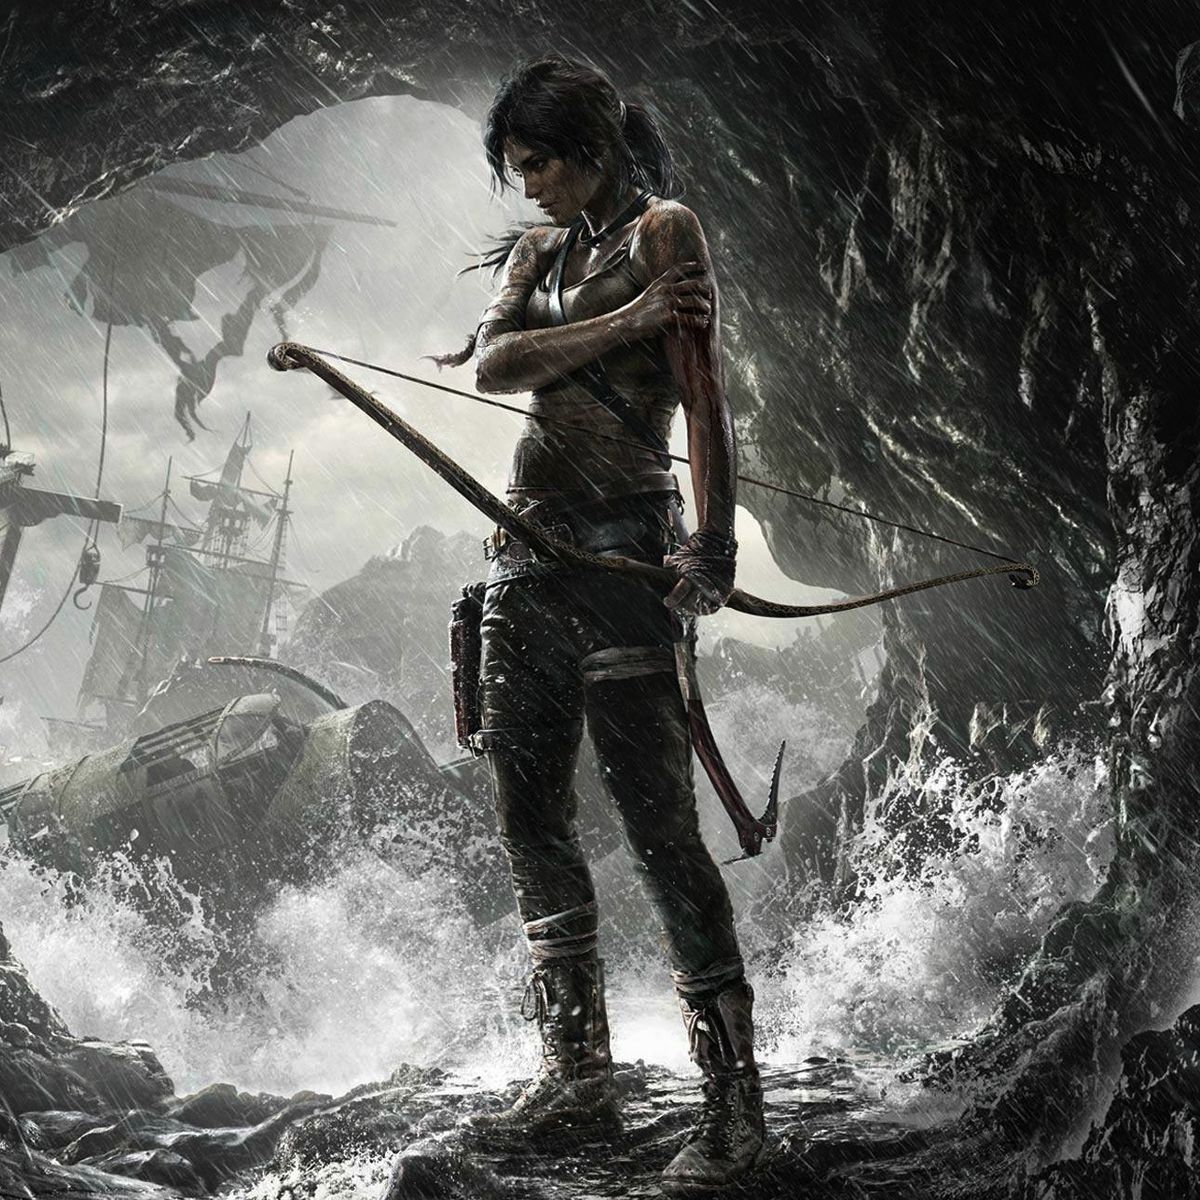 tomb_raider_2013_wallpaper.jpg